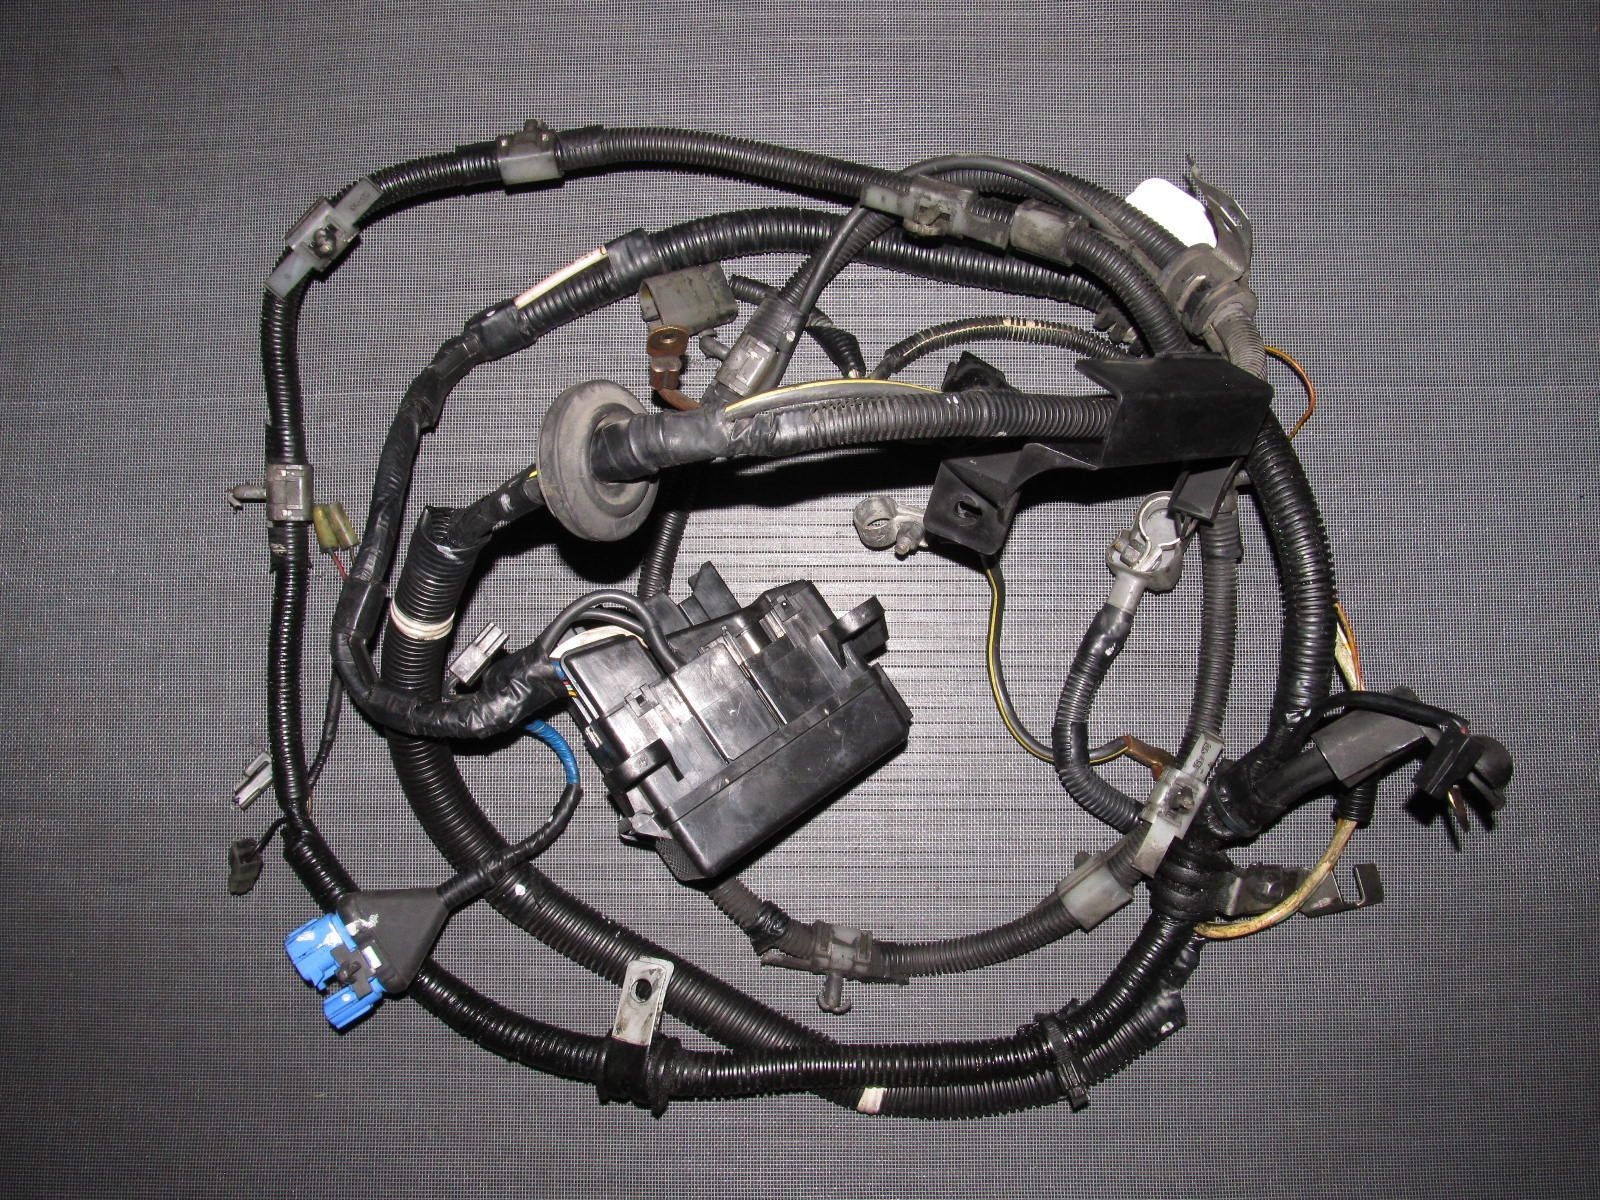 aec70a240941c52bc36d4ec38f2ad0d7 90 91 92 93 mazda miata fuse box transmission & engine wiring miata engine wiring harness swap at gsmportal.co